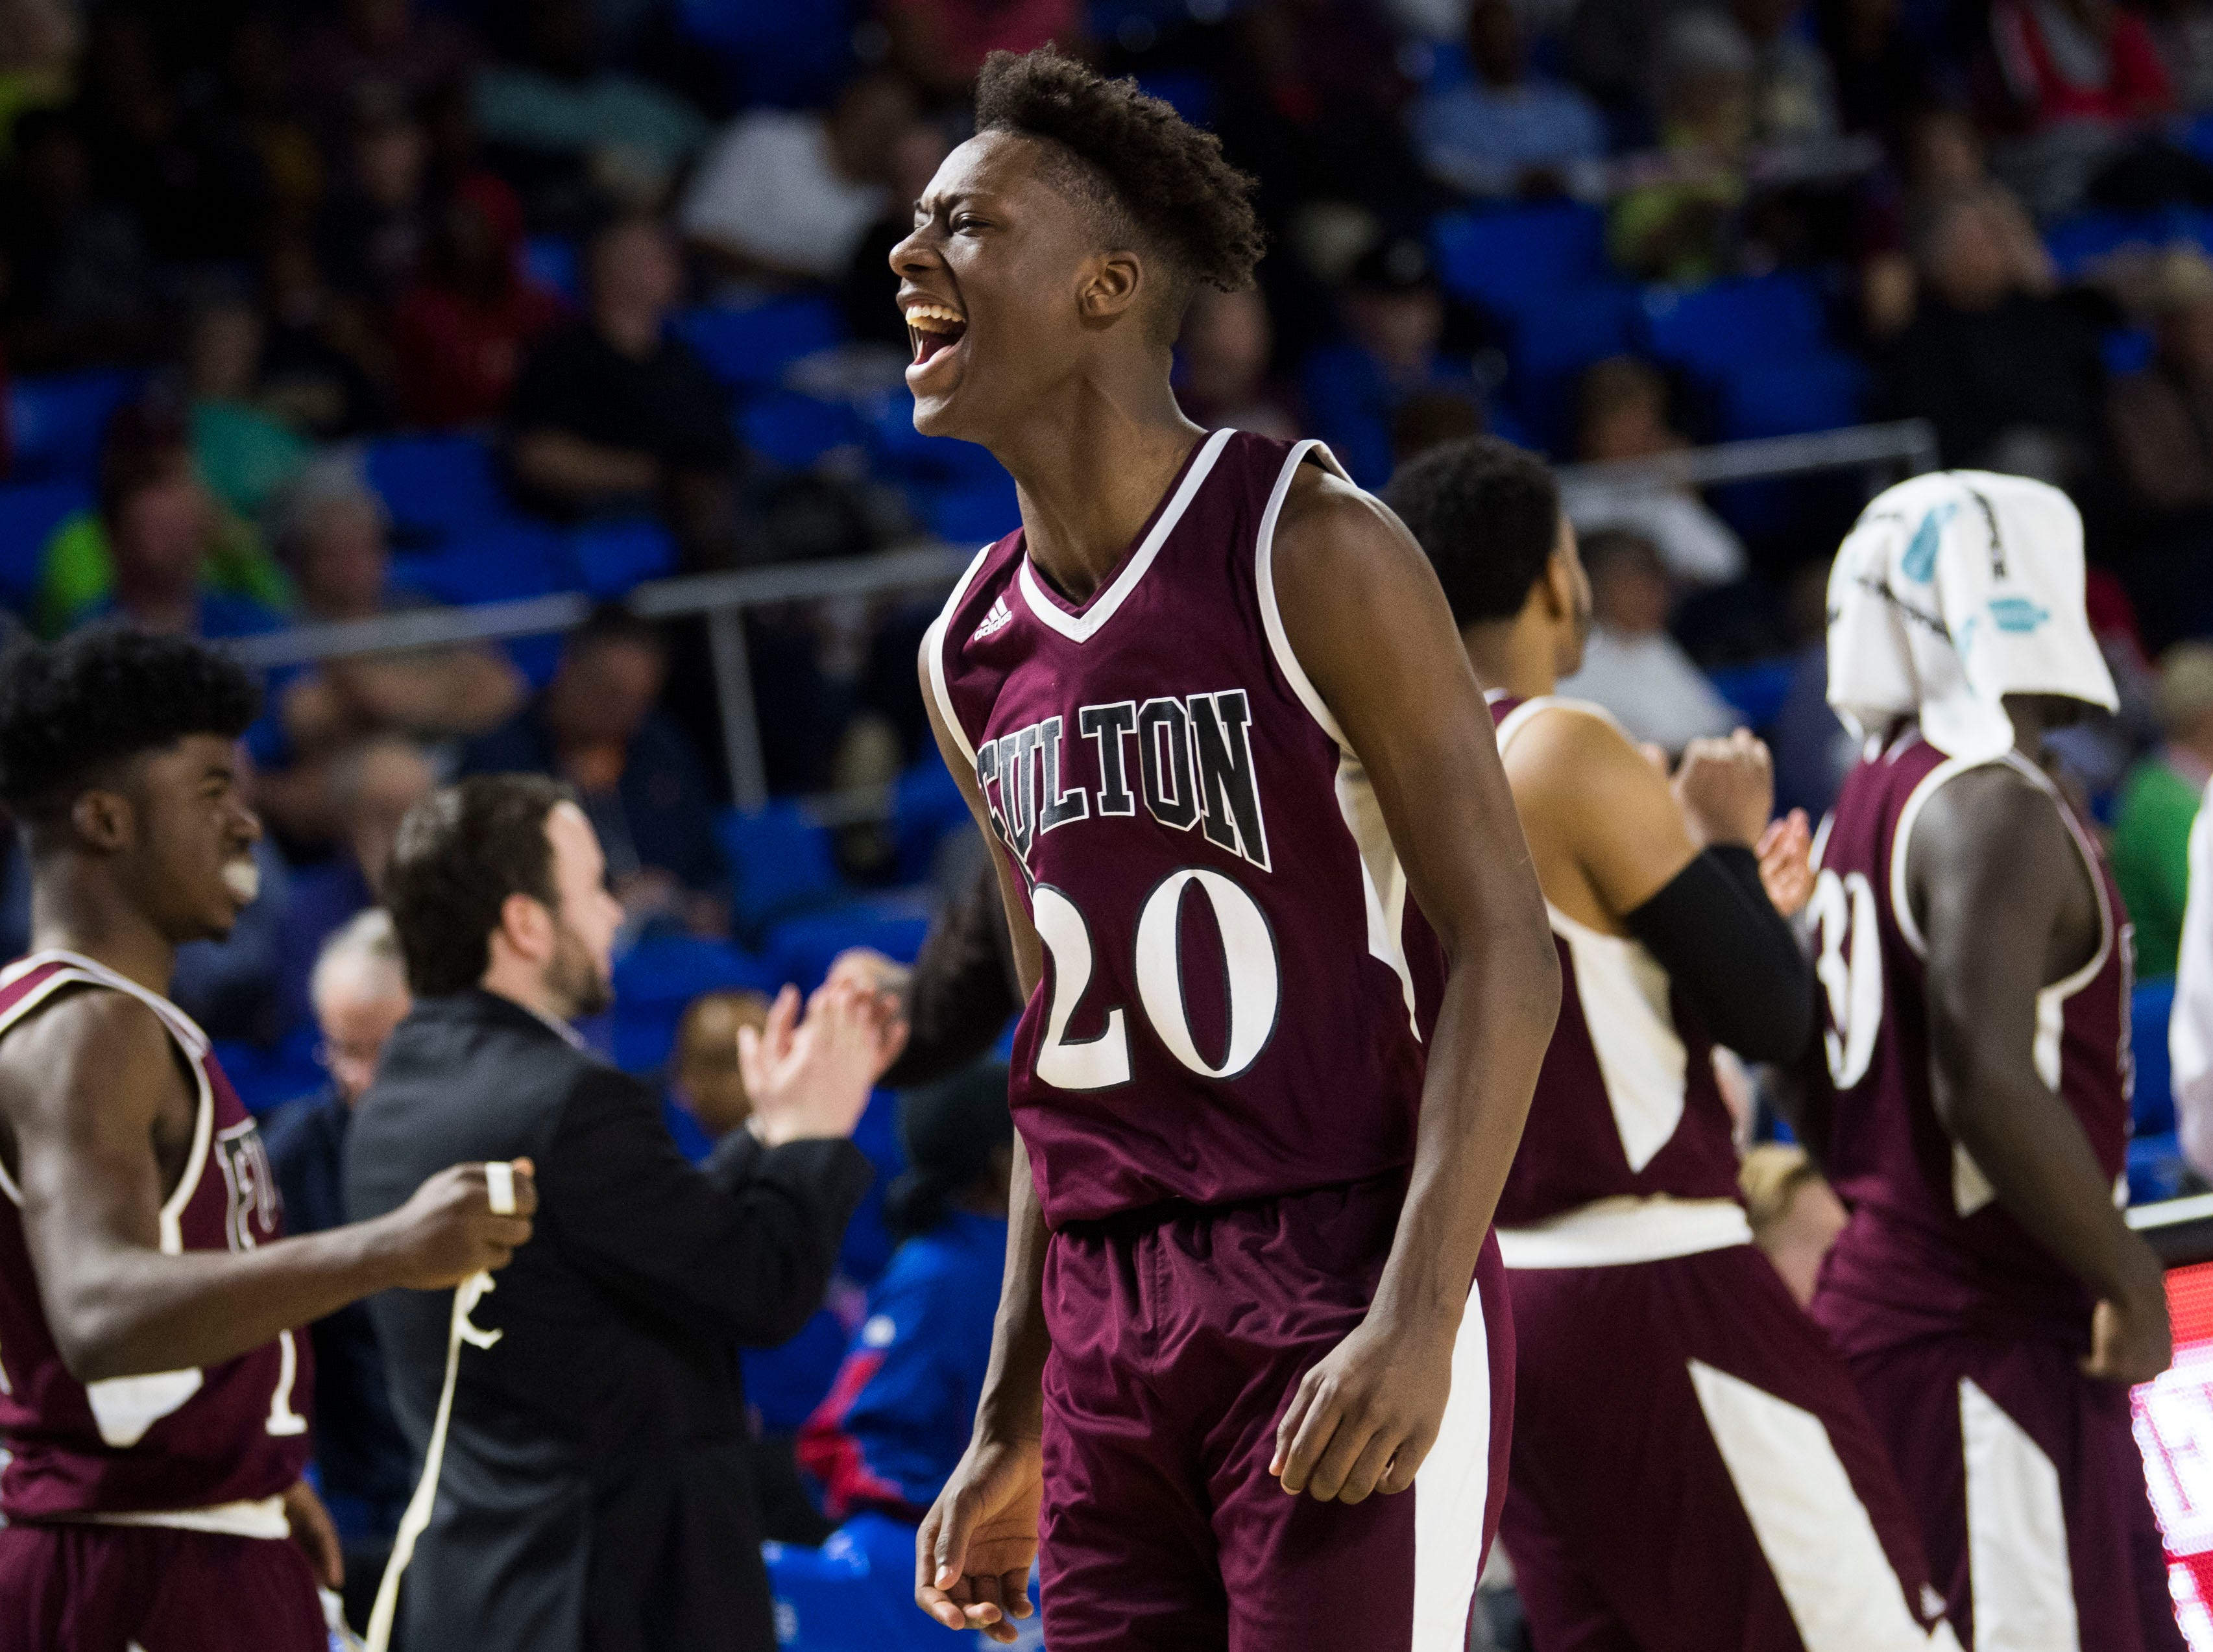 Fulton's Domenic Holland (20) after a TSSAA AA state semifinal game between East Nashville and Fulton at the Murphy Center in Murfreesboro, Friday, March 15, 2019. Fulton defeated East Nashville 66-55.